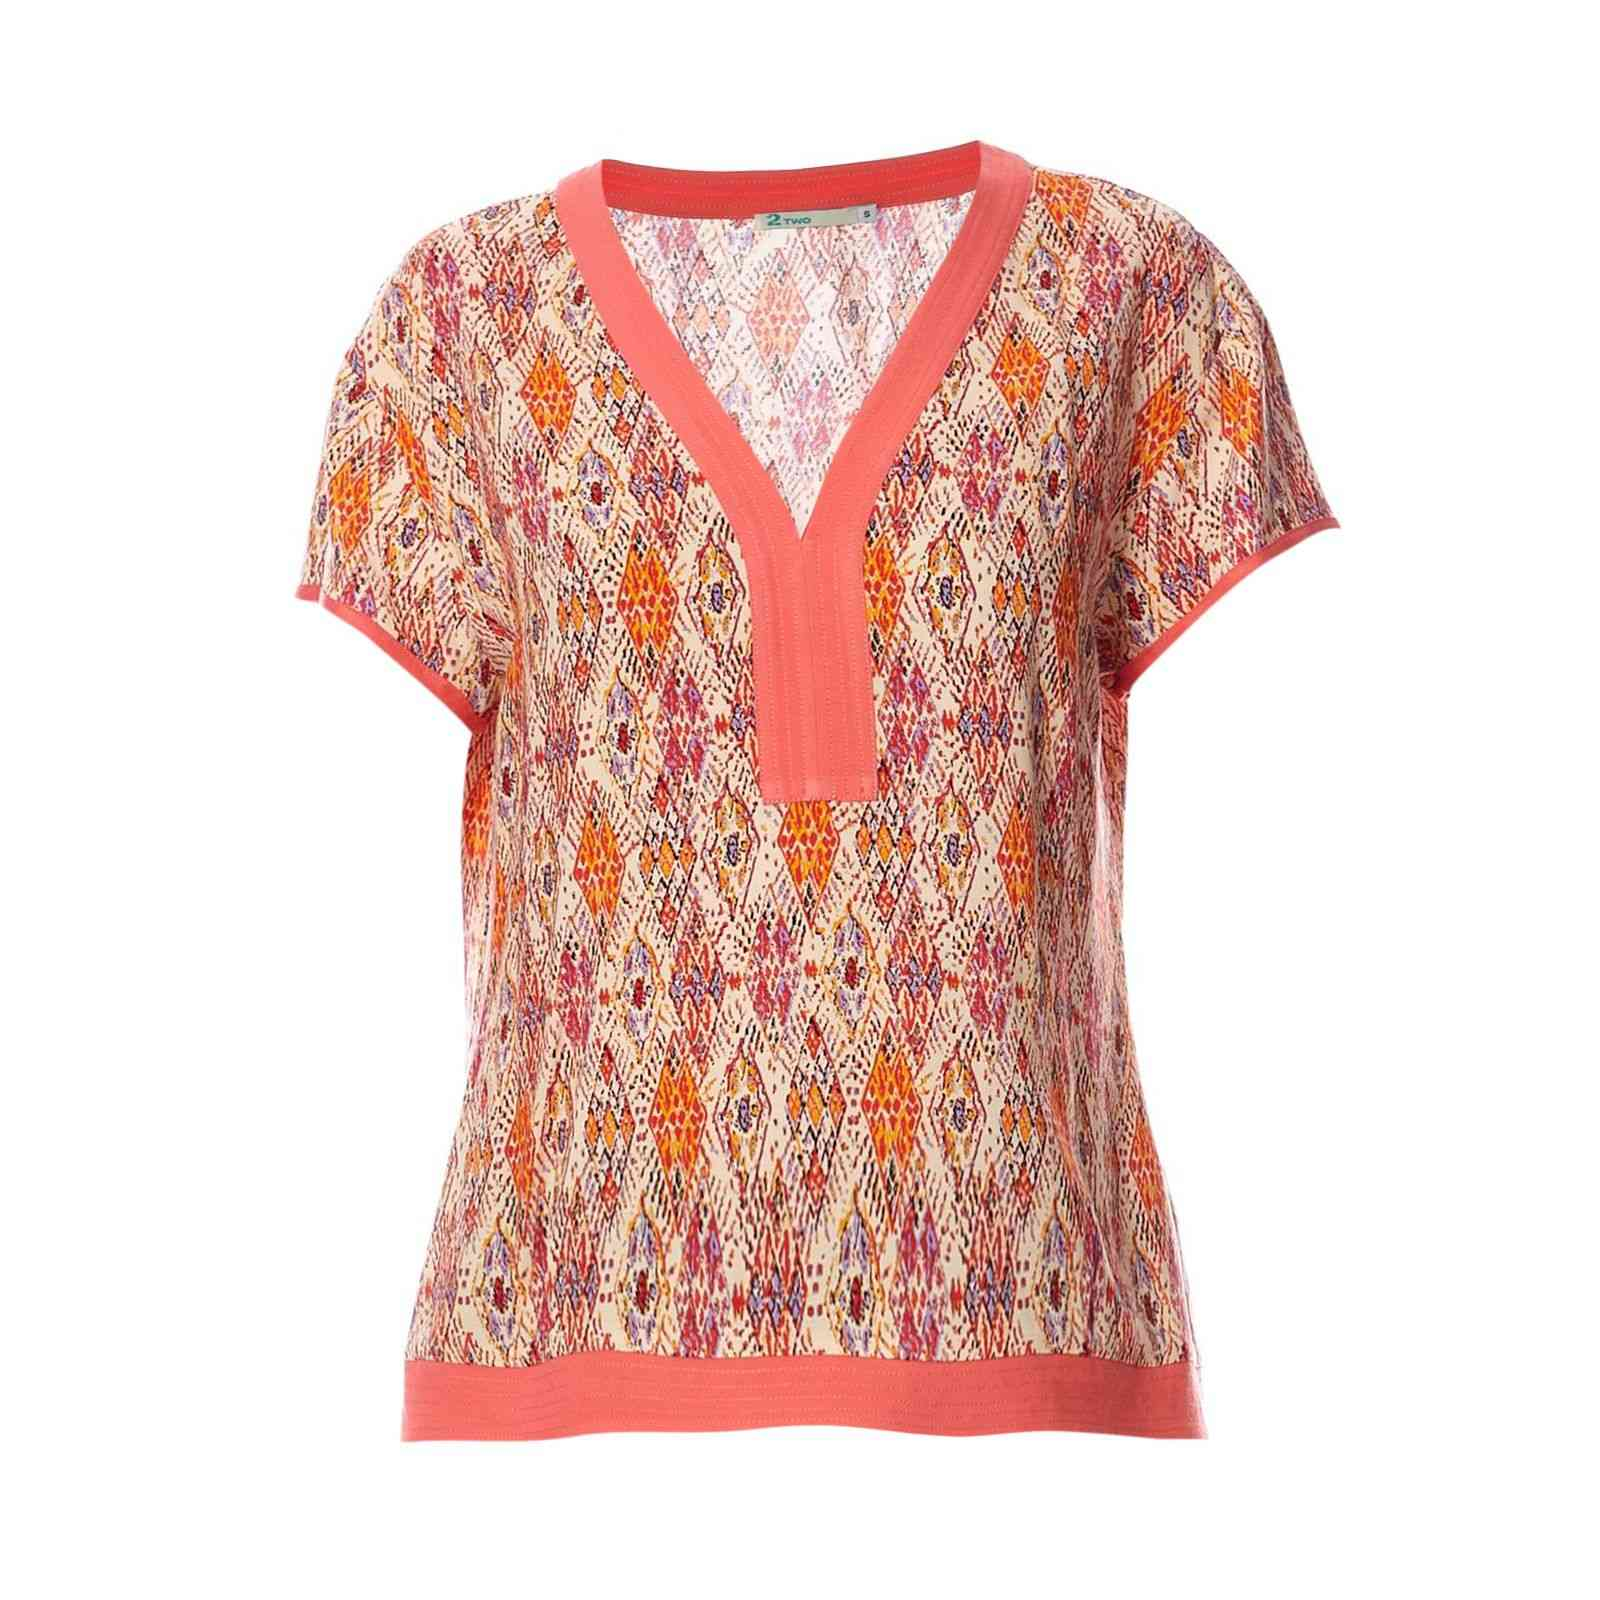 2two Blouse - p�che